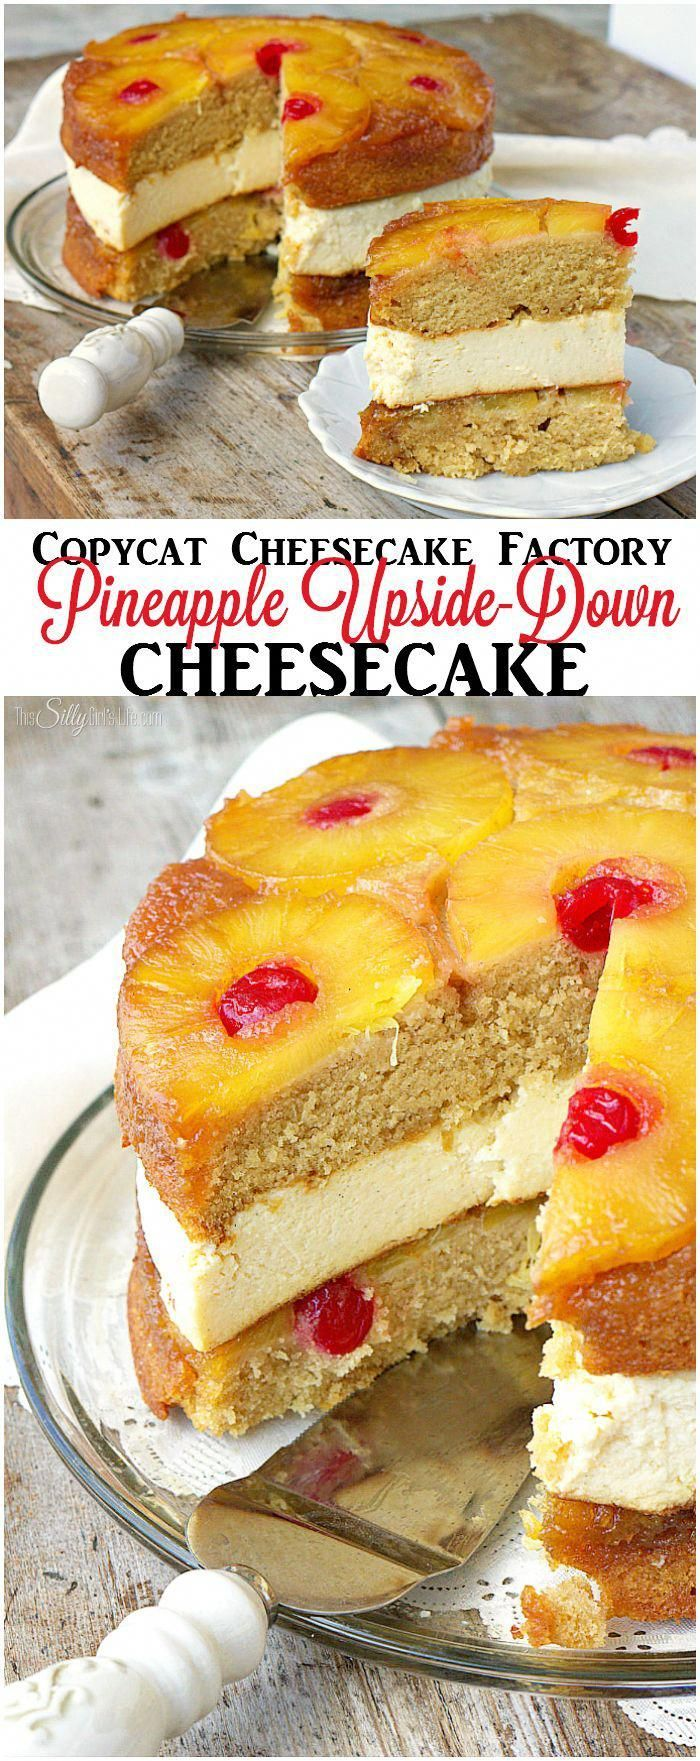 Cheesecake Factory Pineapple Upside-Down Cheesecake, two layers of buttery pineapple upside-down cake stuffed with pineapple cheesecake, just like the restaurant... but homemade! -